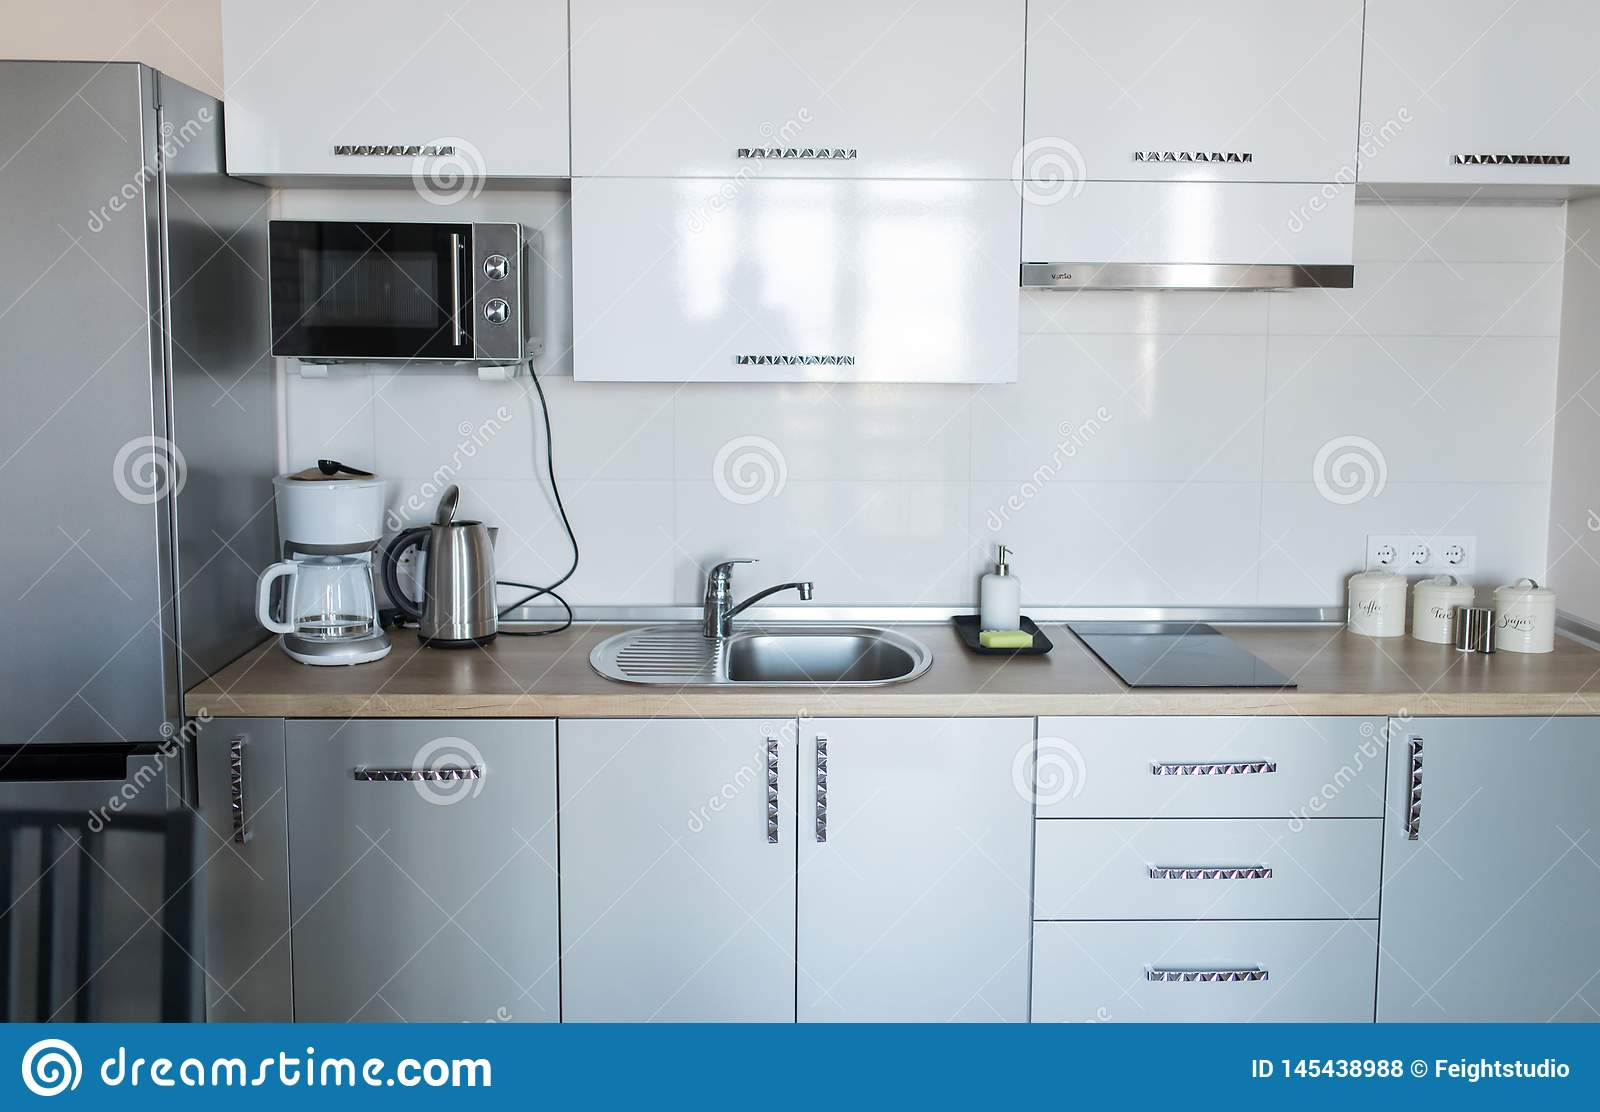 Luxury Kitchen Interior Kitchen Home Apartment Kitchen Stock Photo Image Of Appliance Business 145438988